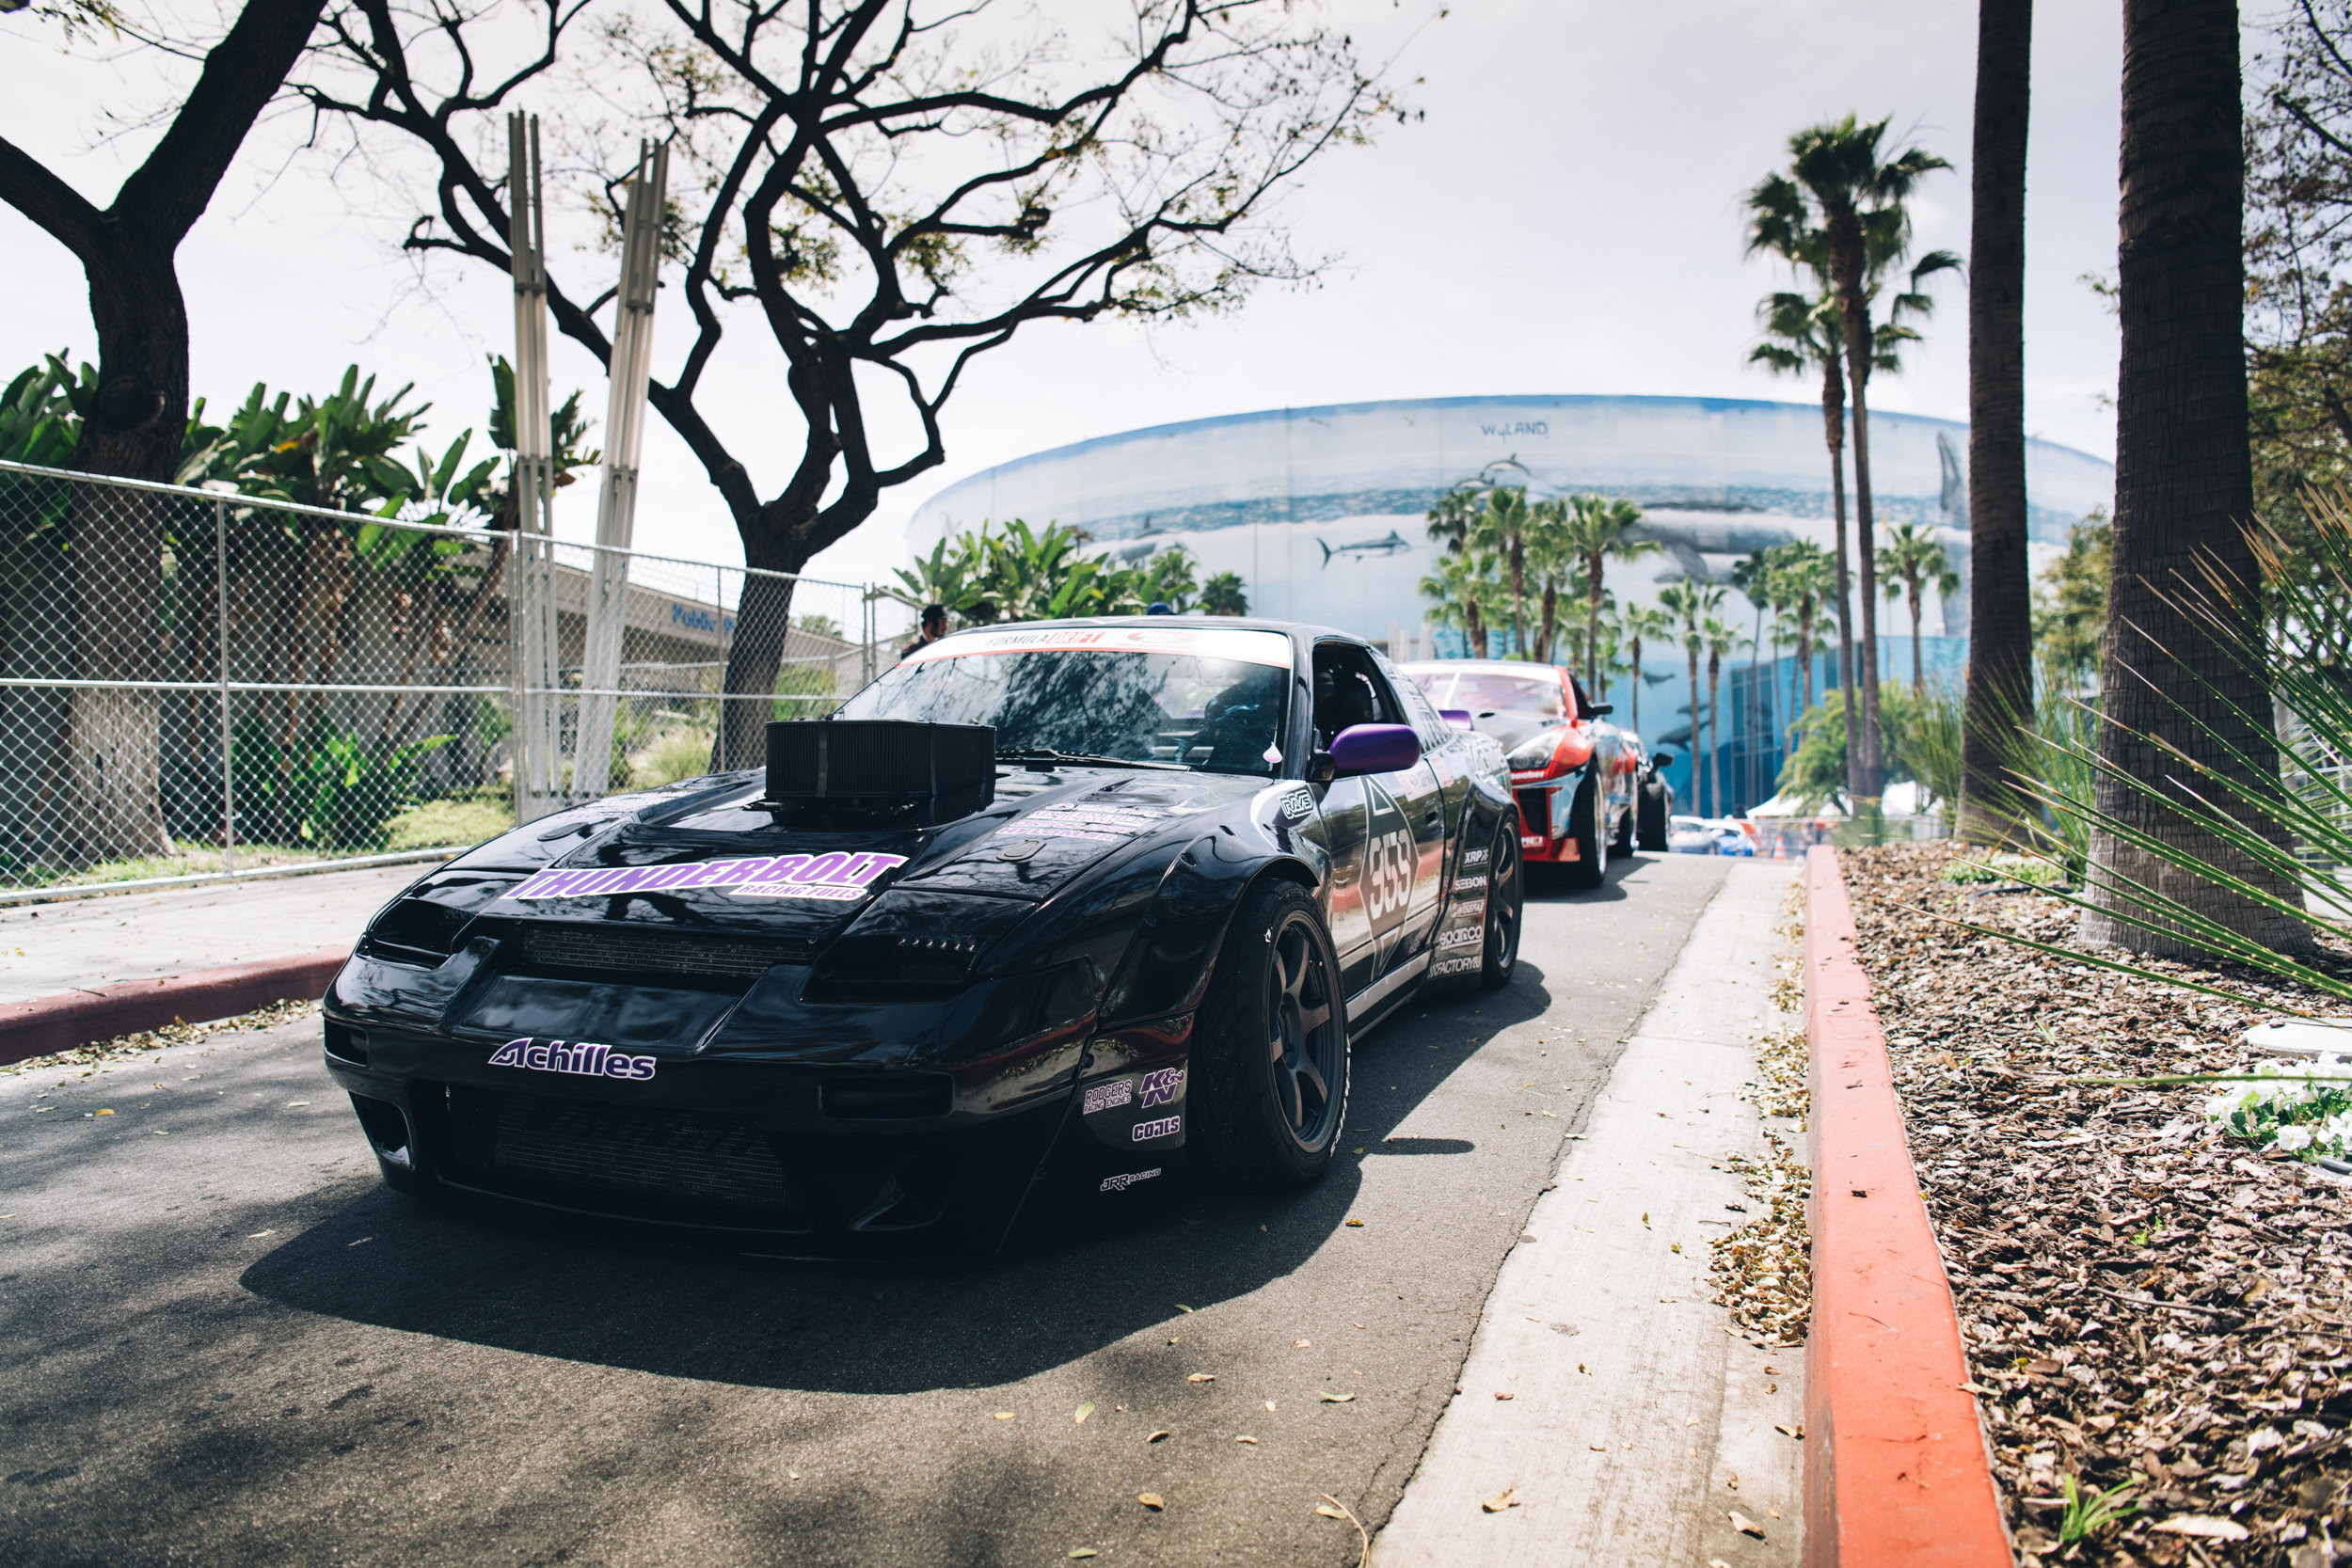 For the first time, we were able to attend Formula Drift's Media day, a day of ride alongs and practice runs in the name of journalism and publicity. In the four driving sessions, Matt was able to make practice runs while the team was able to get data for this weekend's competition.